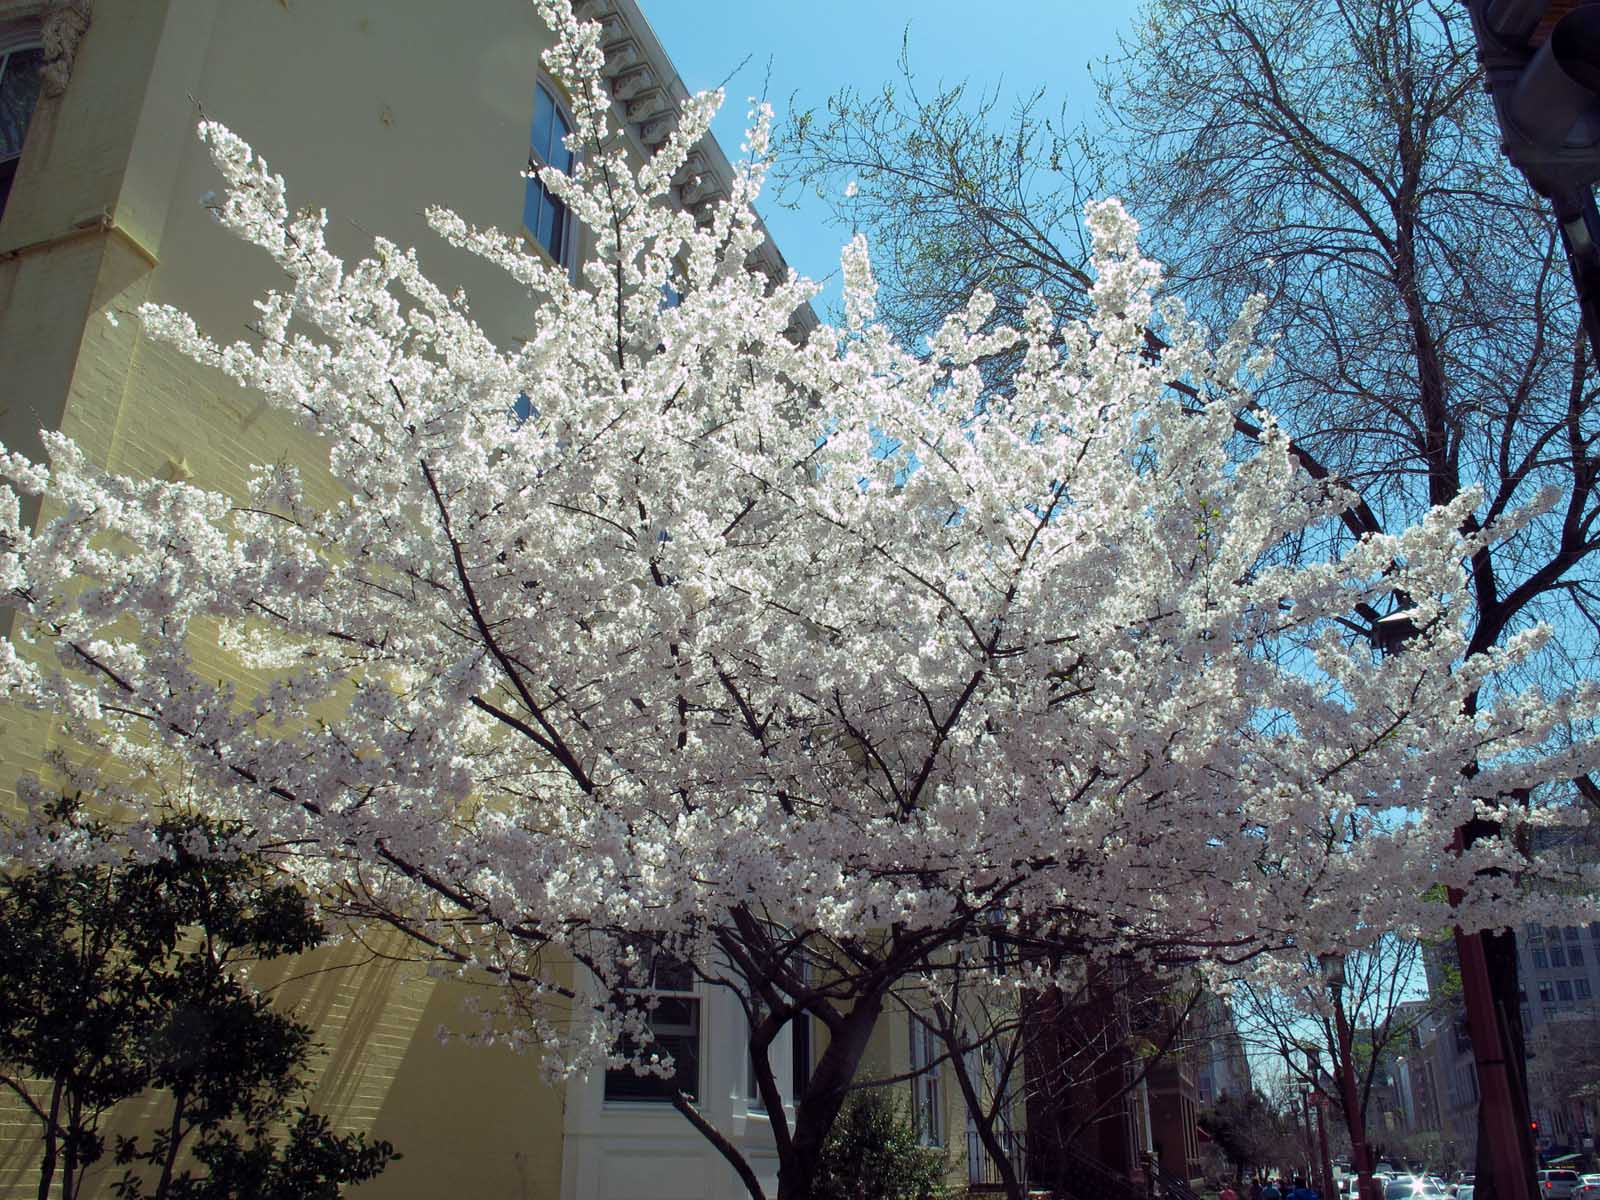 The blooming of the various trees in the suburbia of Washington D.C. during the month of April is a sight to behold.